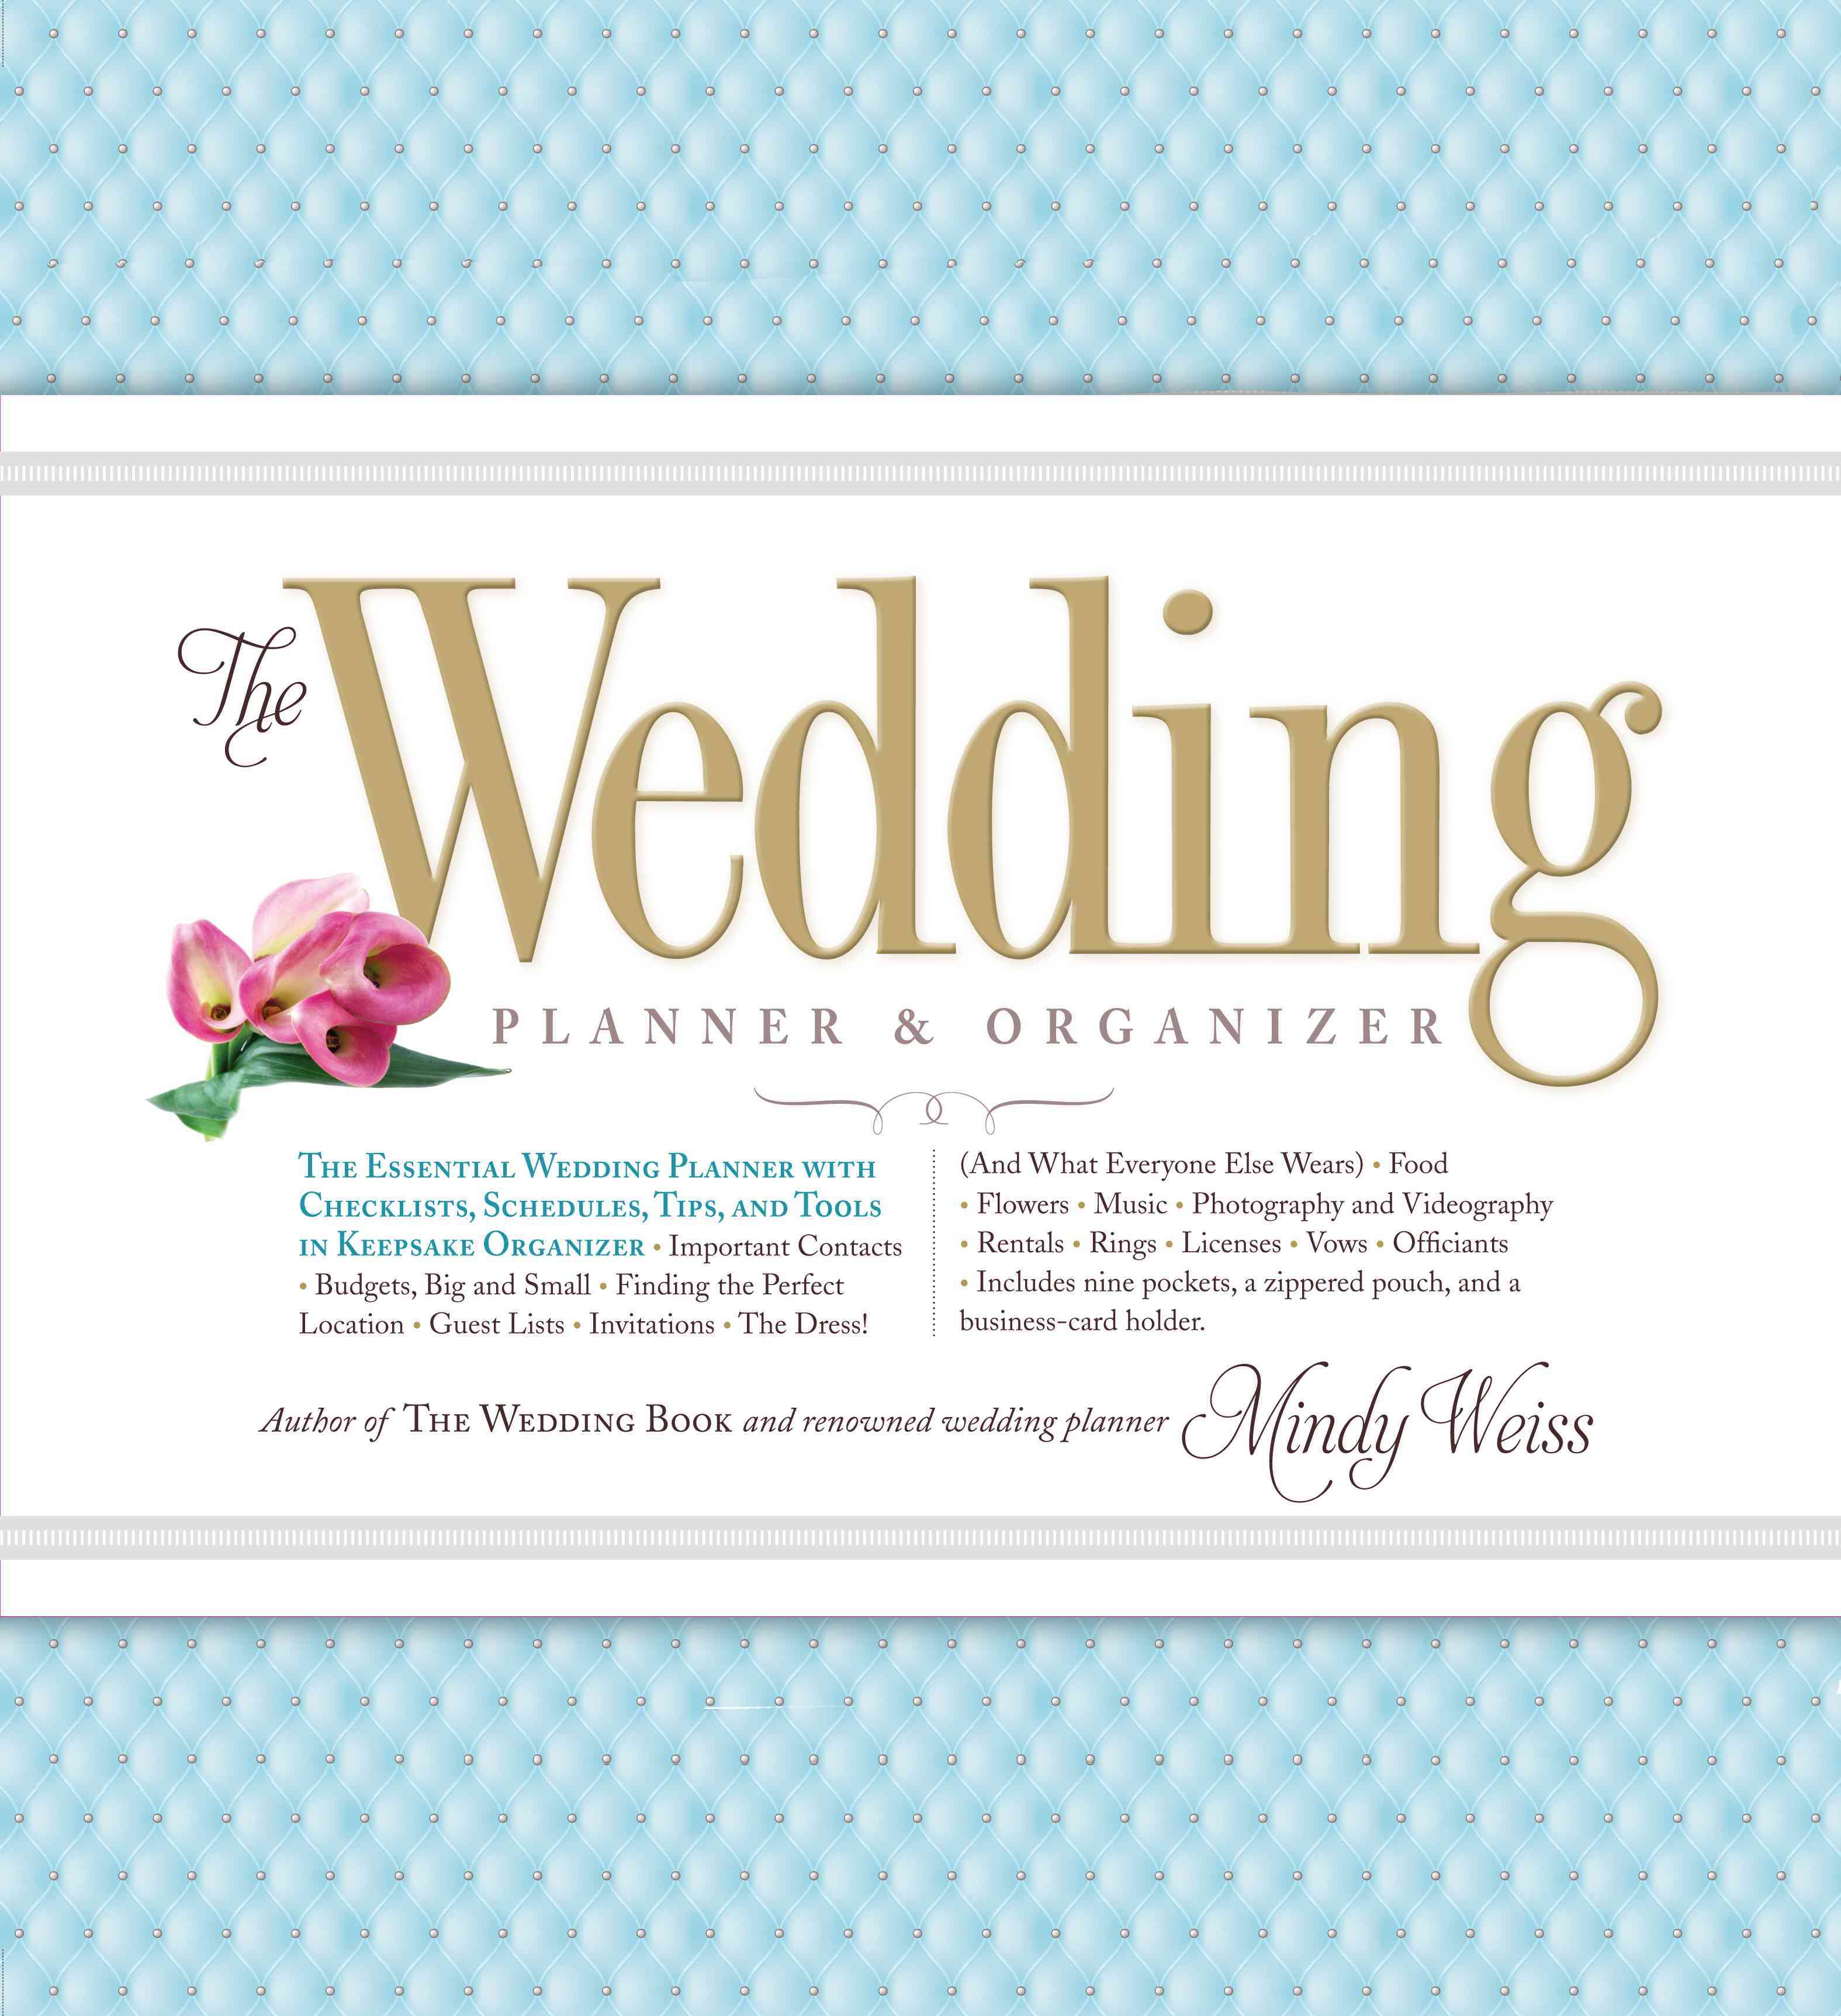 Wedding Gift List Insurance : The Wedding Planner & Organizer (Hardcover) - Overstock Shopping ...